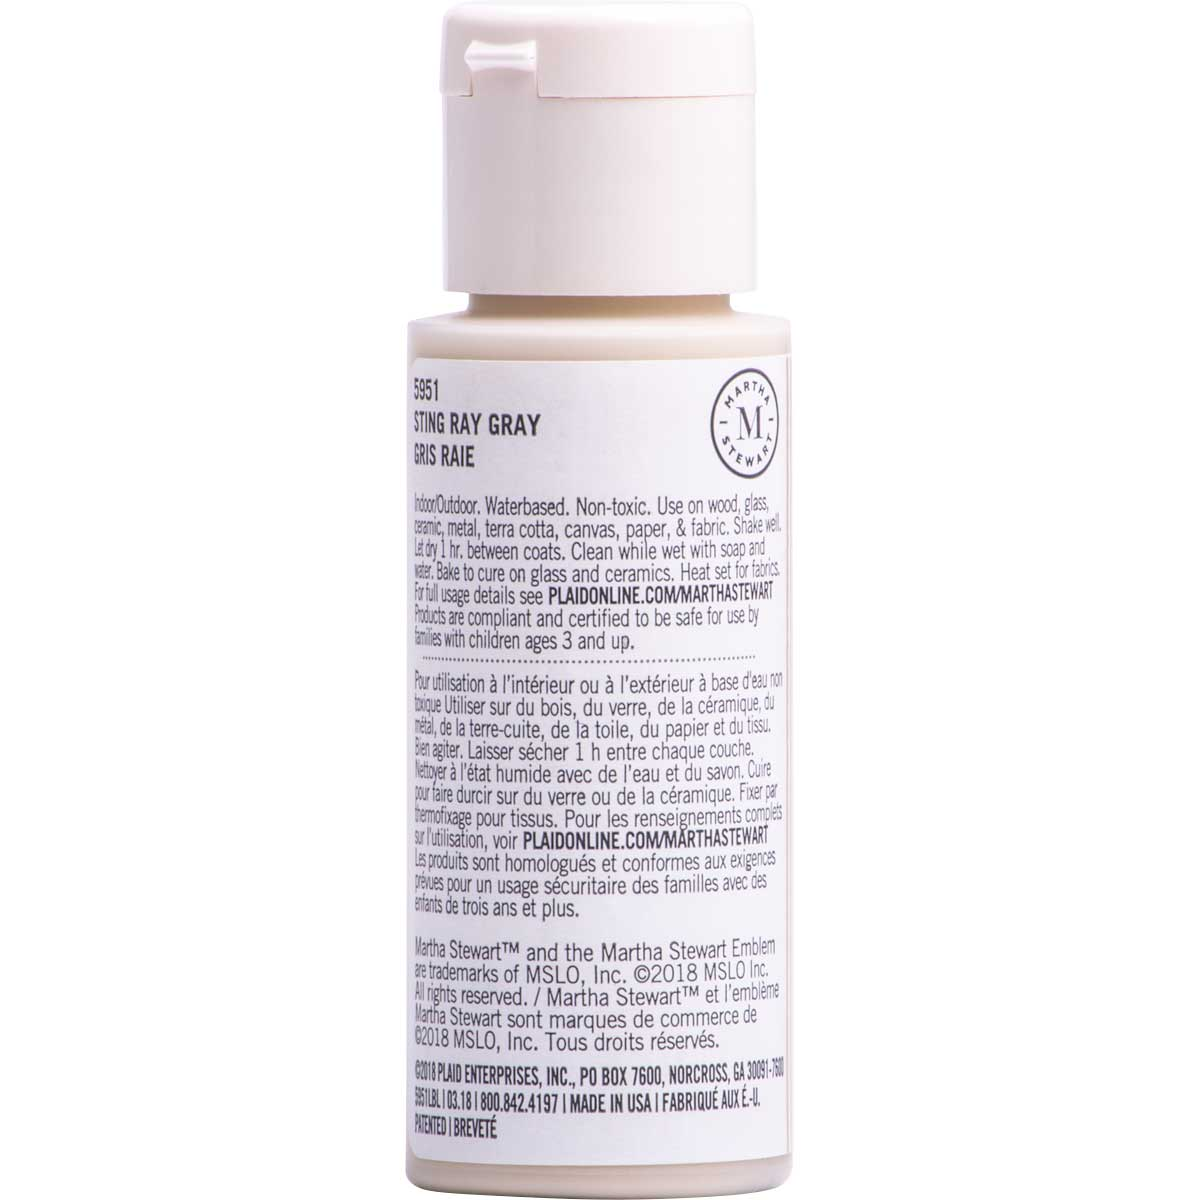 Martha Stewart ® Multi-Surface Satin Acrylic Craft Paint CPSIA - Sting Ray Gray, 2 oz. - 5951